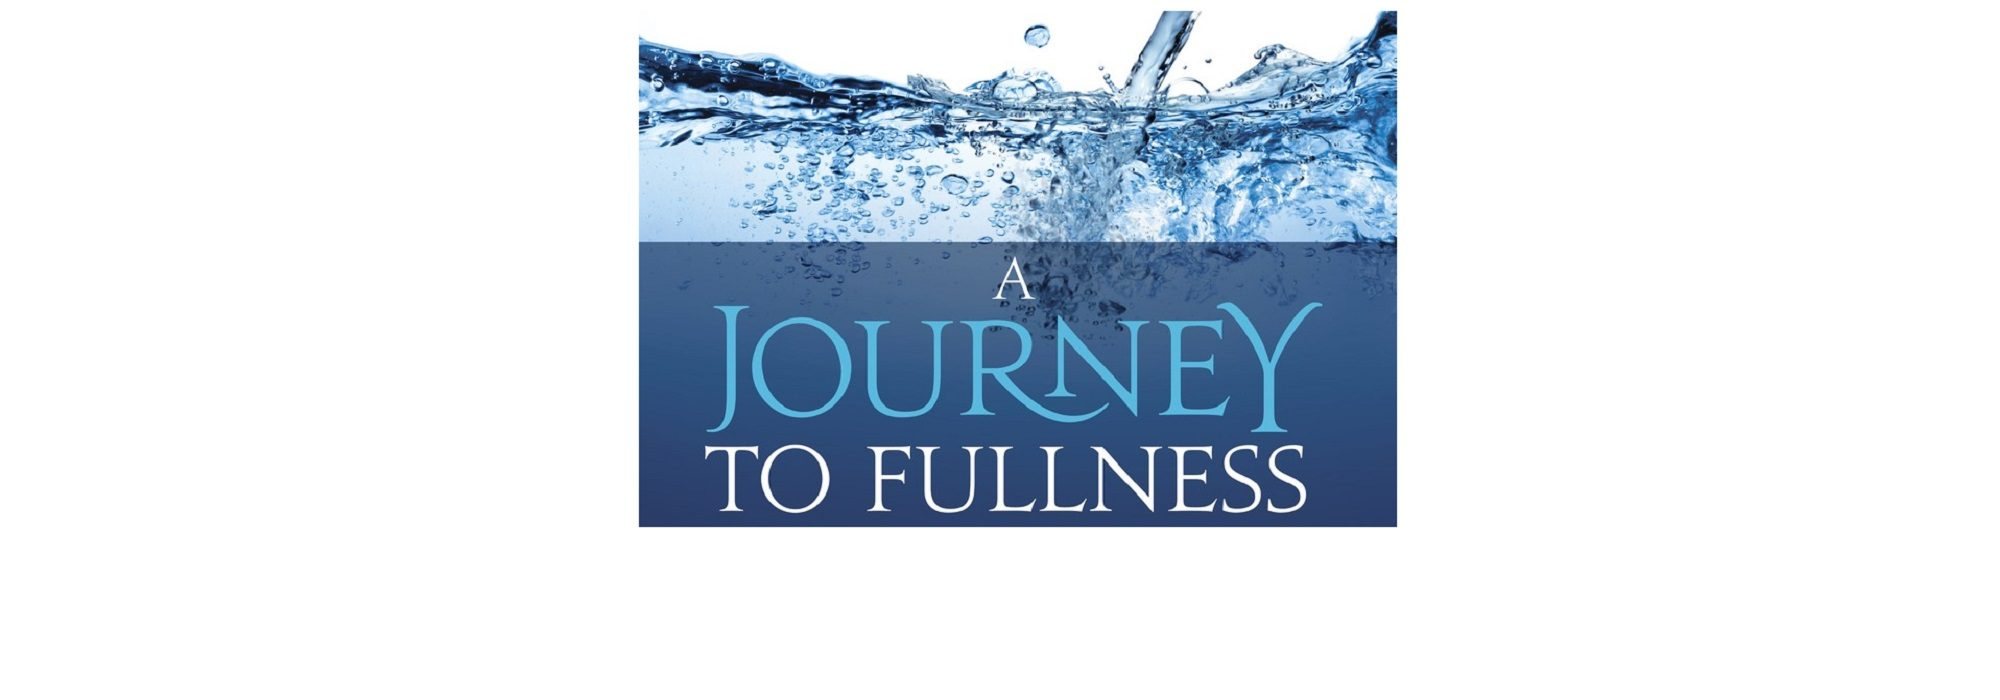 A Journey to Fullness